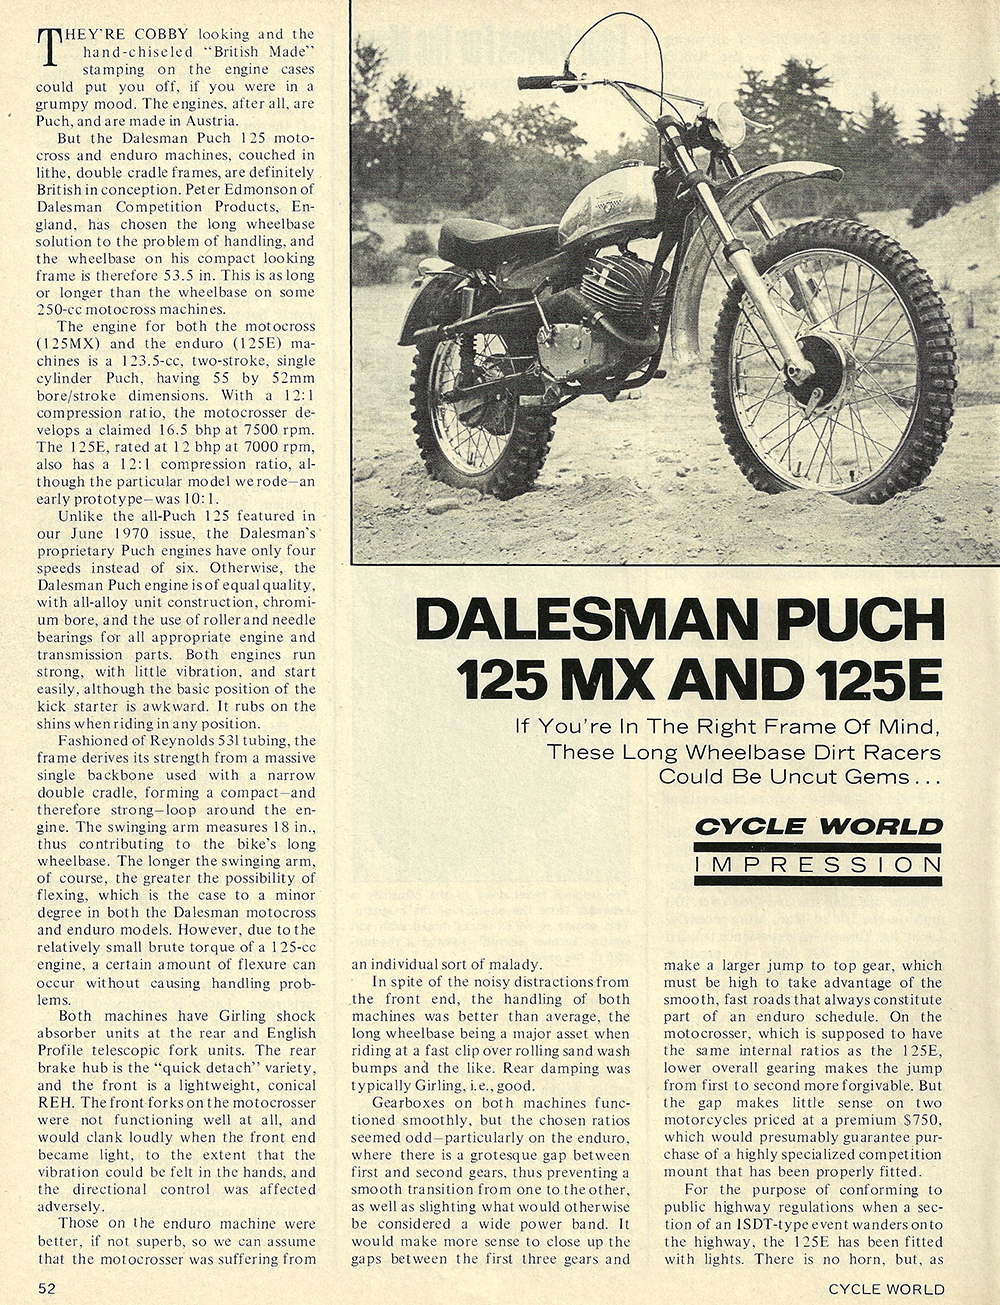 1970 Dalesman Puch 125 MX 125 E road test 01.jpg